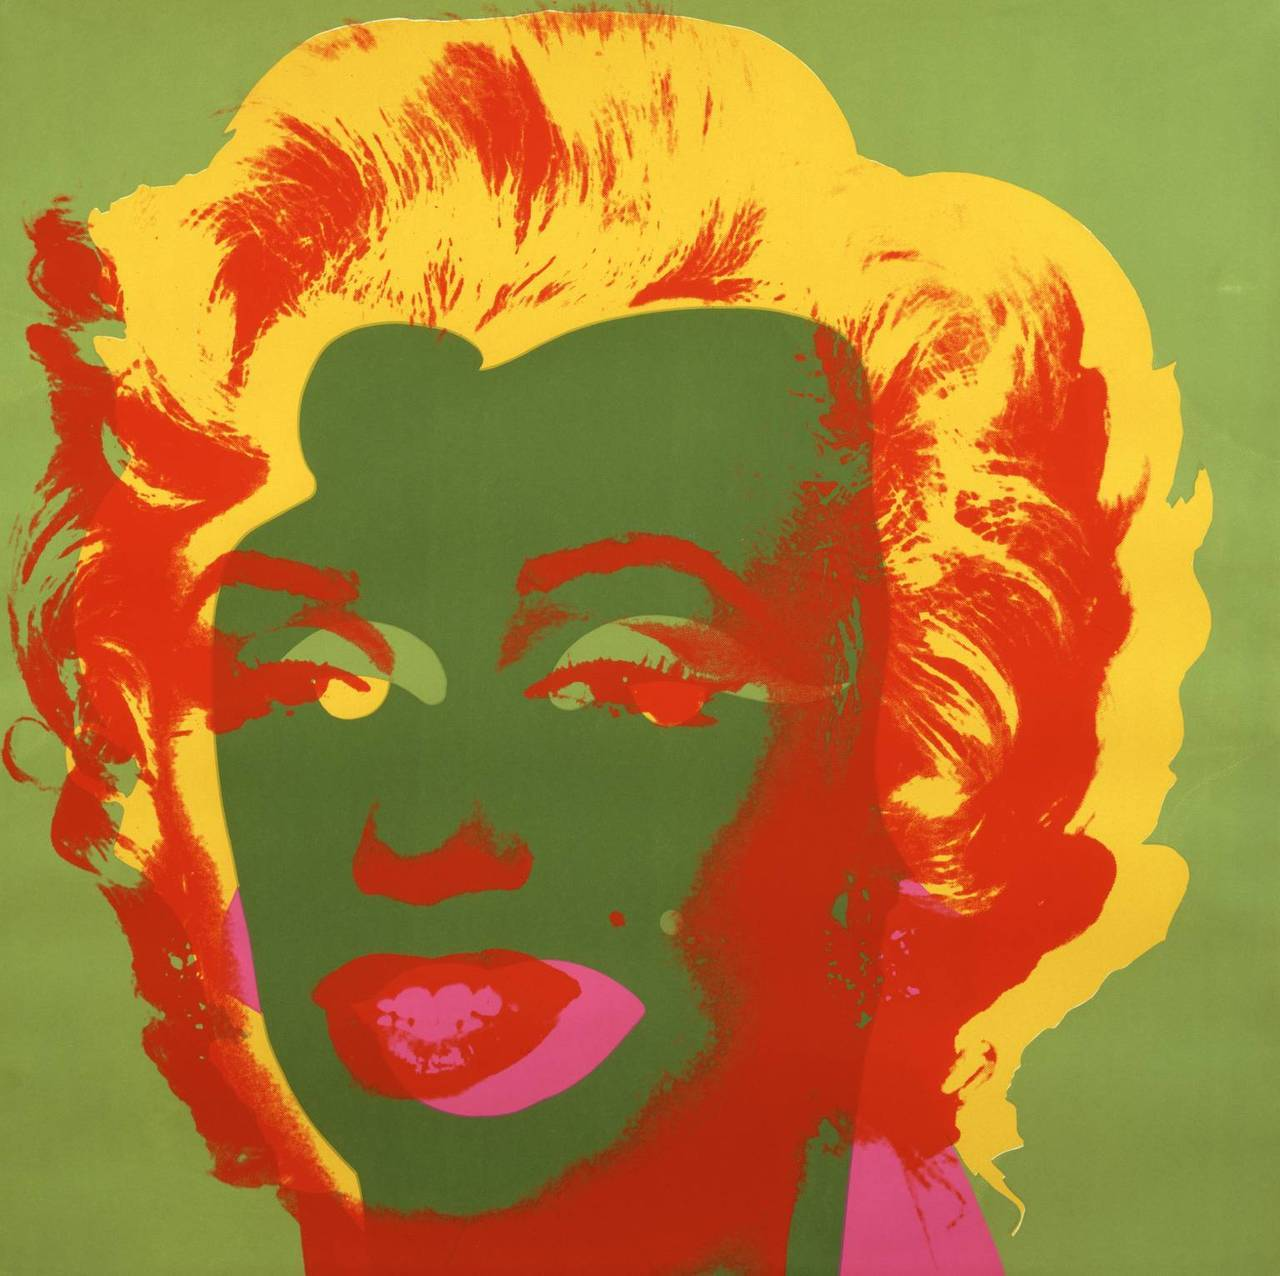 Marilyn Pop Art Andy Warhol Artpedia Andy Warhol Untitled Marilyn 1967